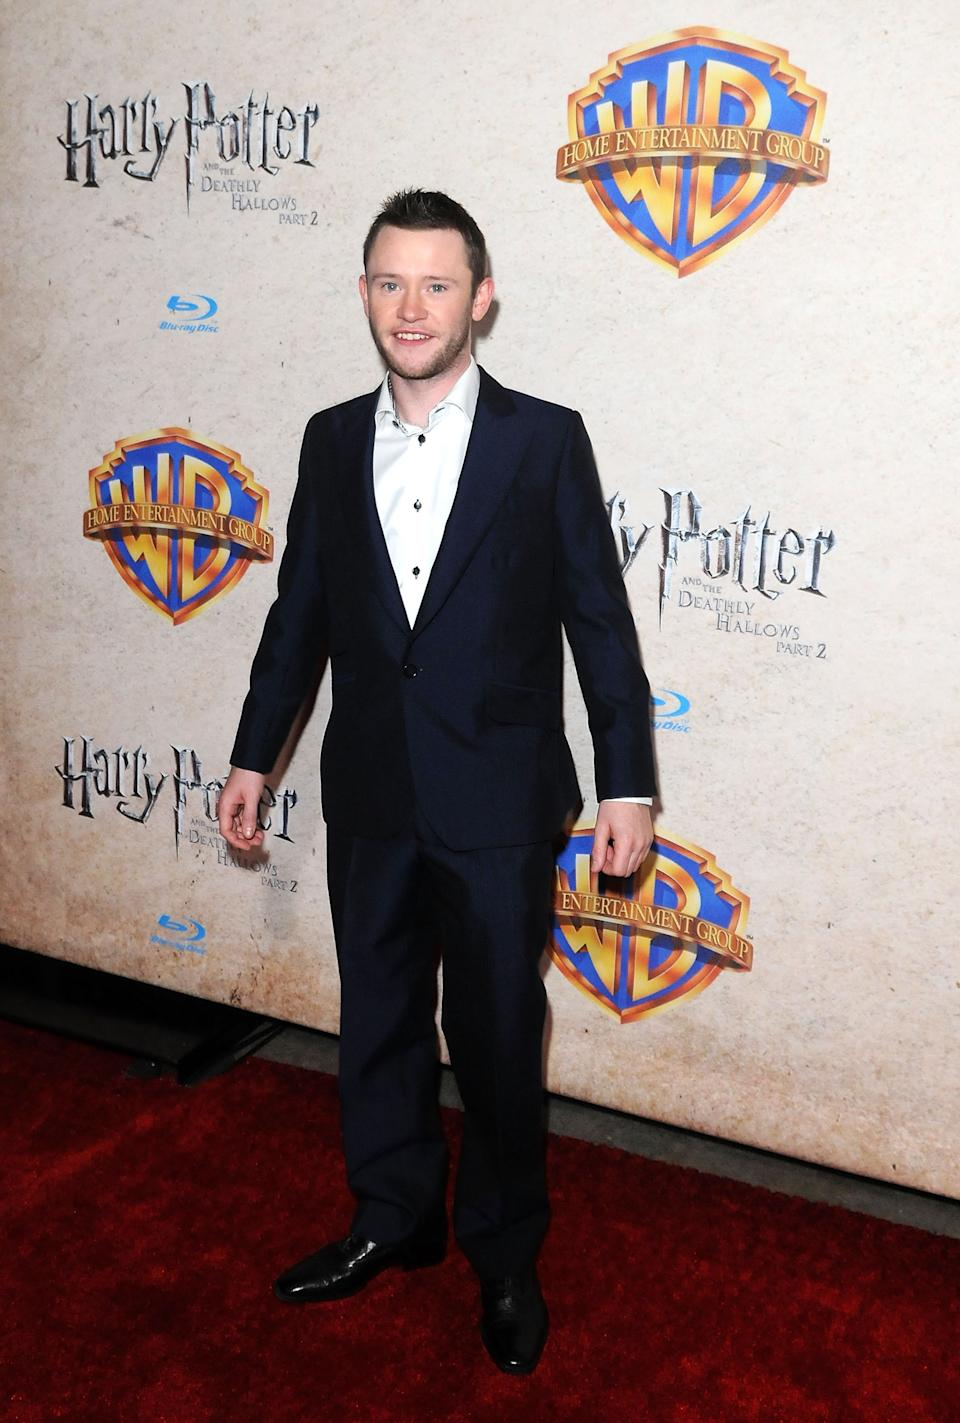 ORLANDO, FL - NOVEMBER 12:  Actor Devon Murray arrives at the Harry Potter and the Deathly Hallows: Part 2 Celebration at Universal Orlando on November 12, 2011 in Orlando, Florida.  (Photo by Gerardo Mora/Getty Images)